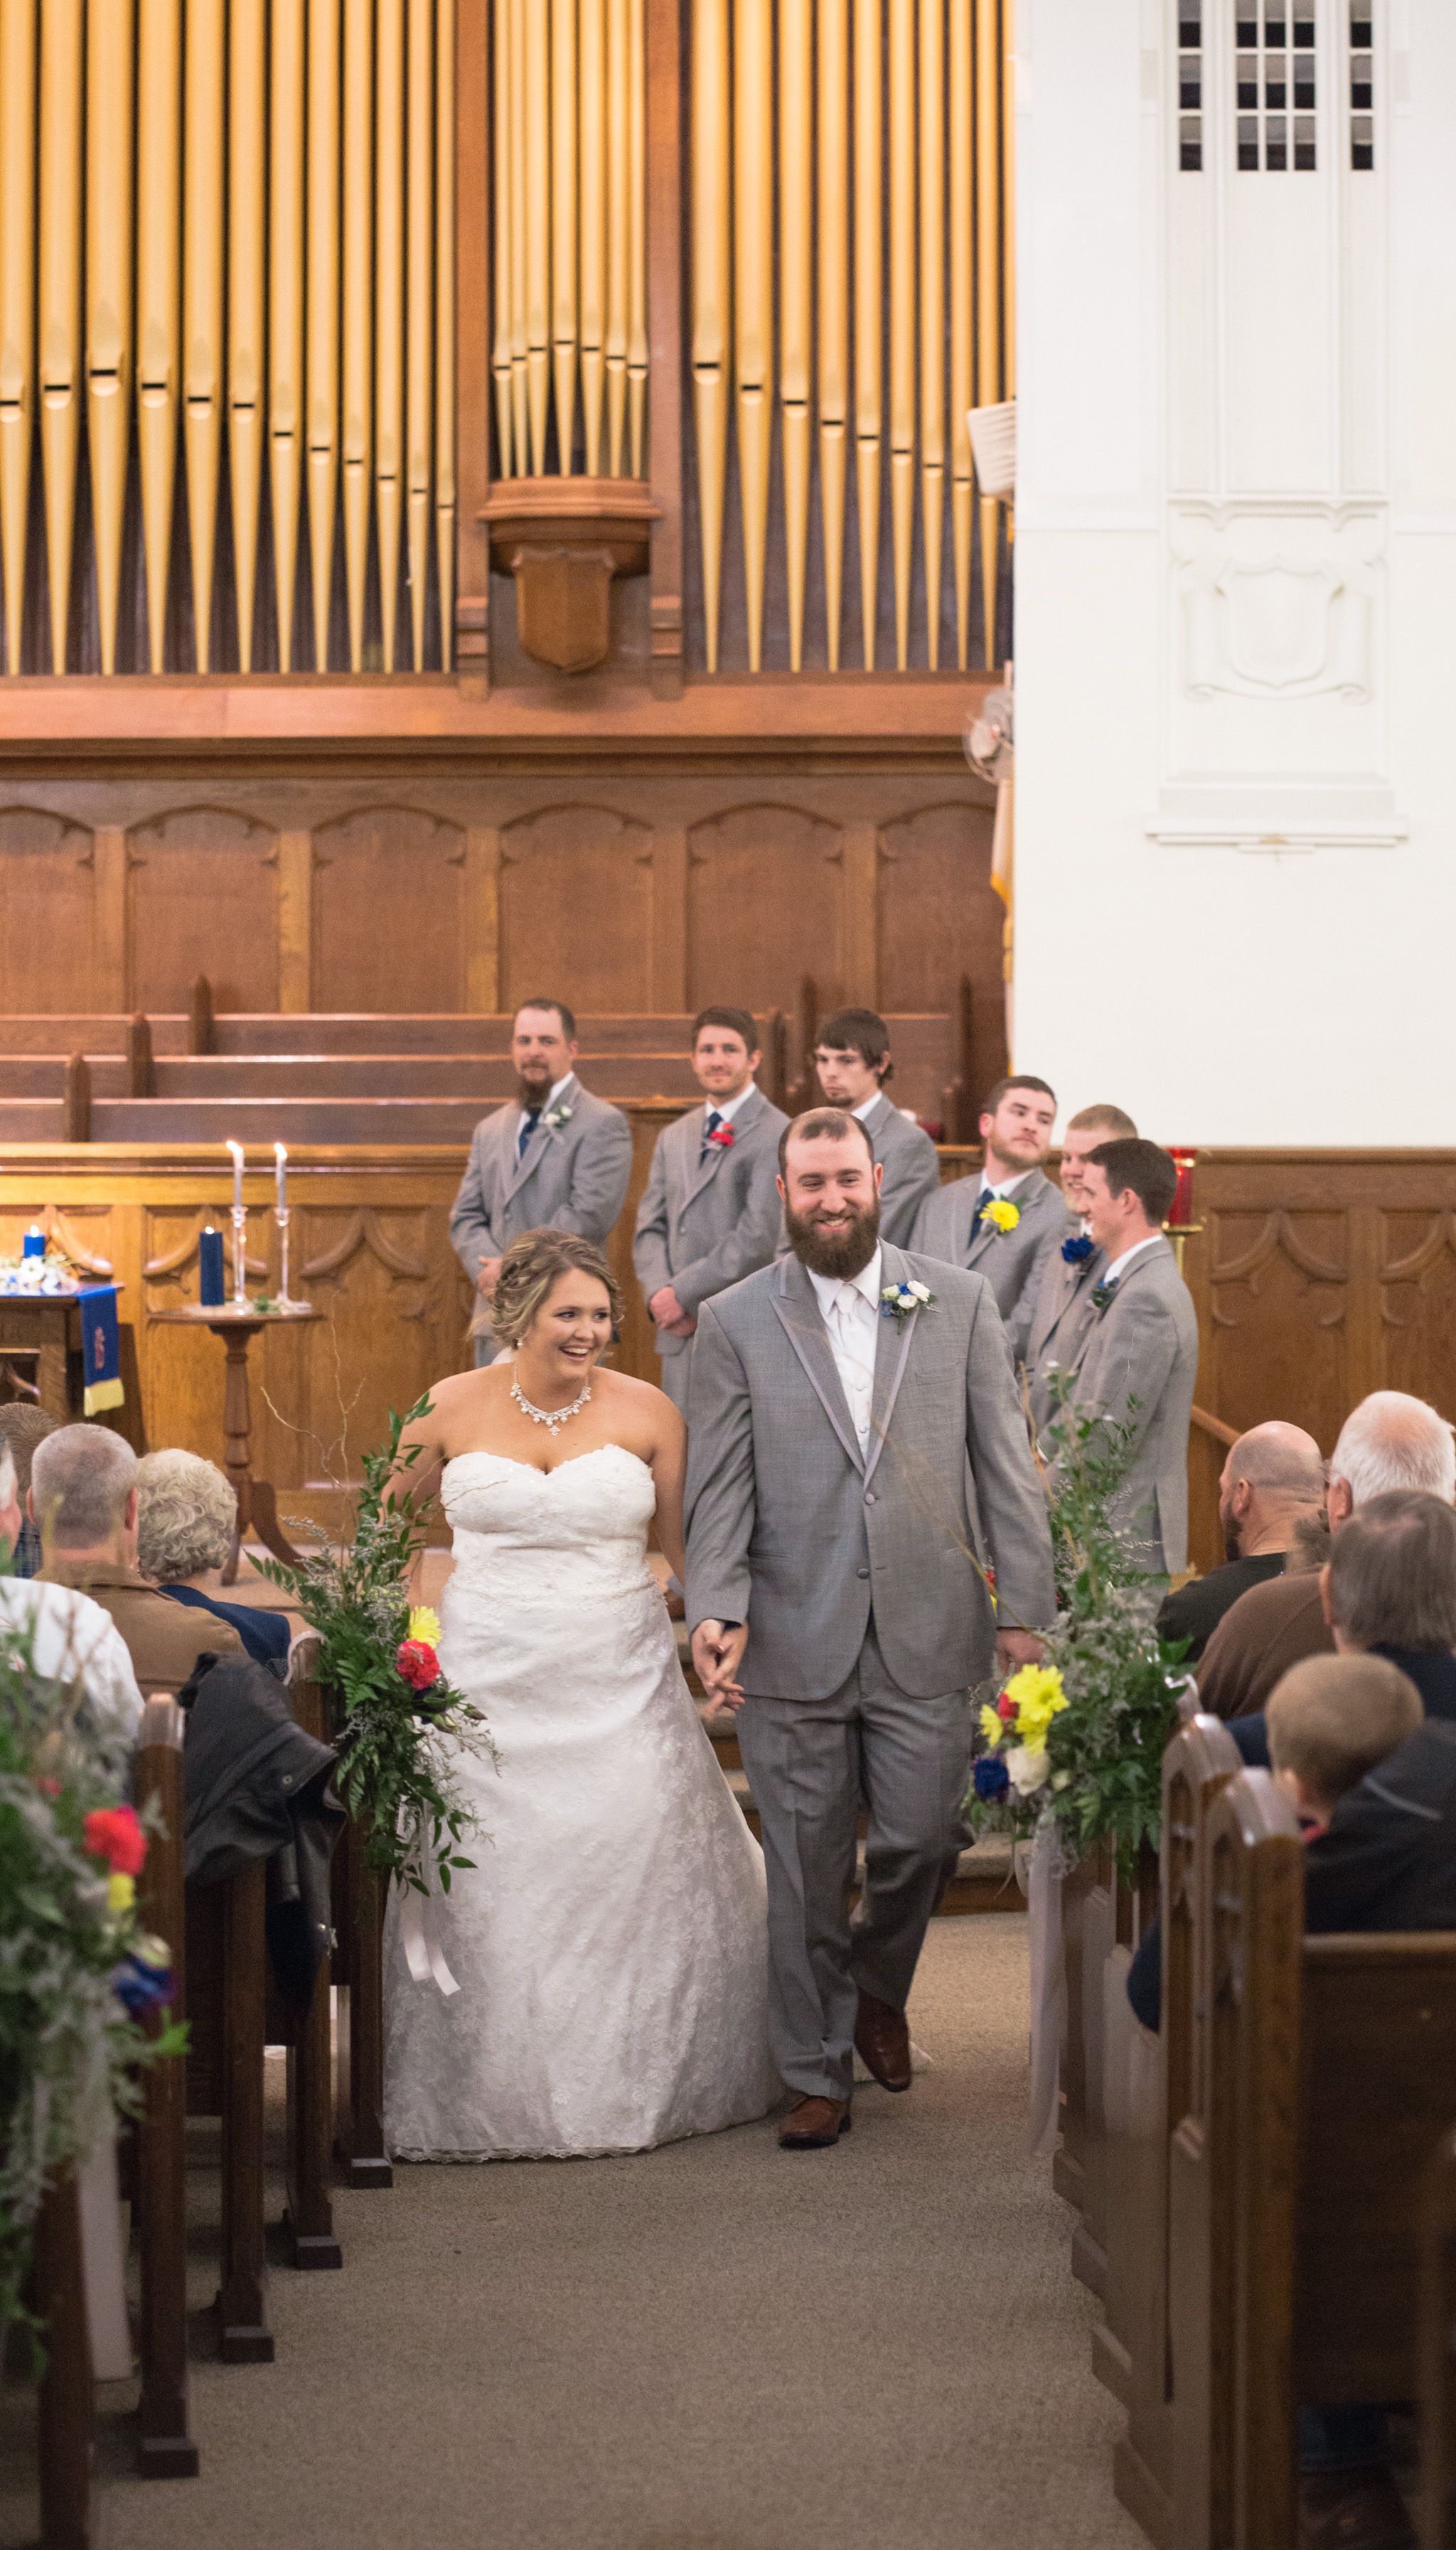 Zibell Spring Wedding, Bride and Groom, Powerful, Connected, Exploration, Laura Duggleby Photography -130.JPG